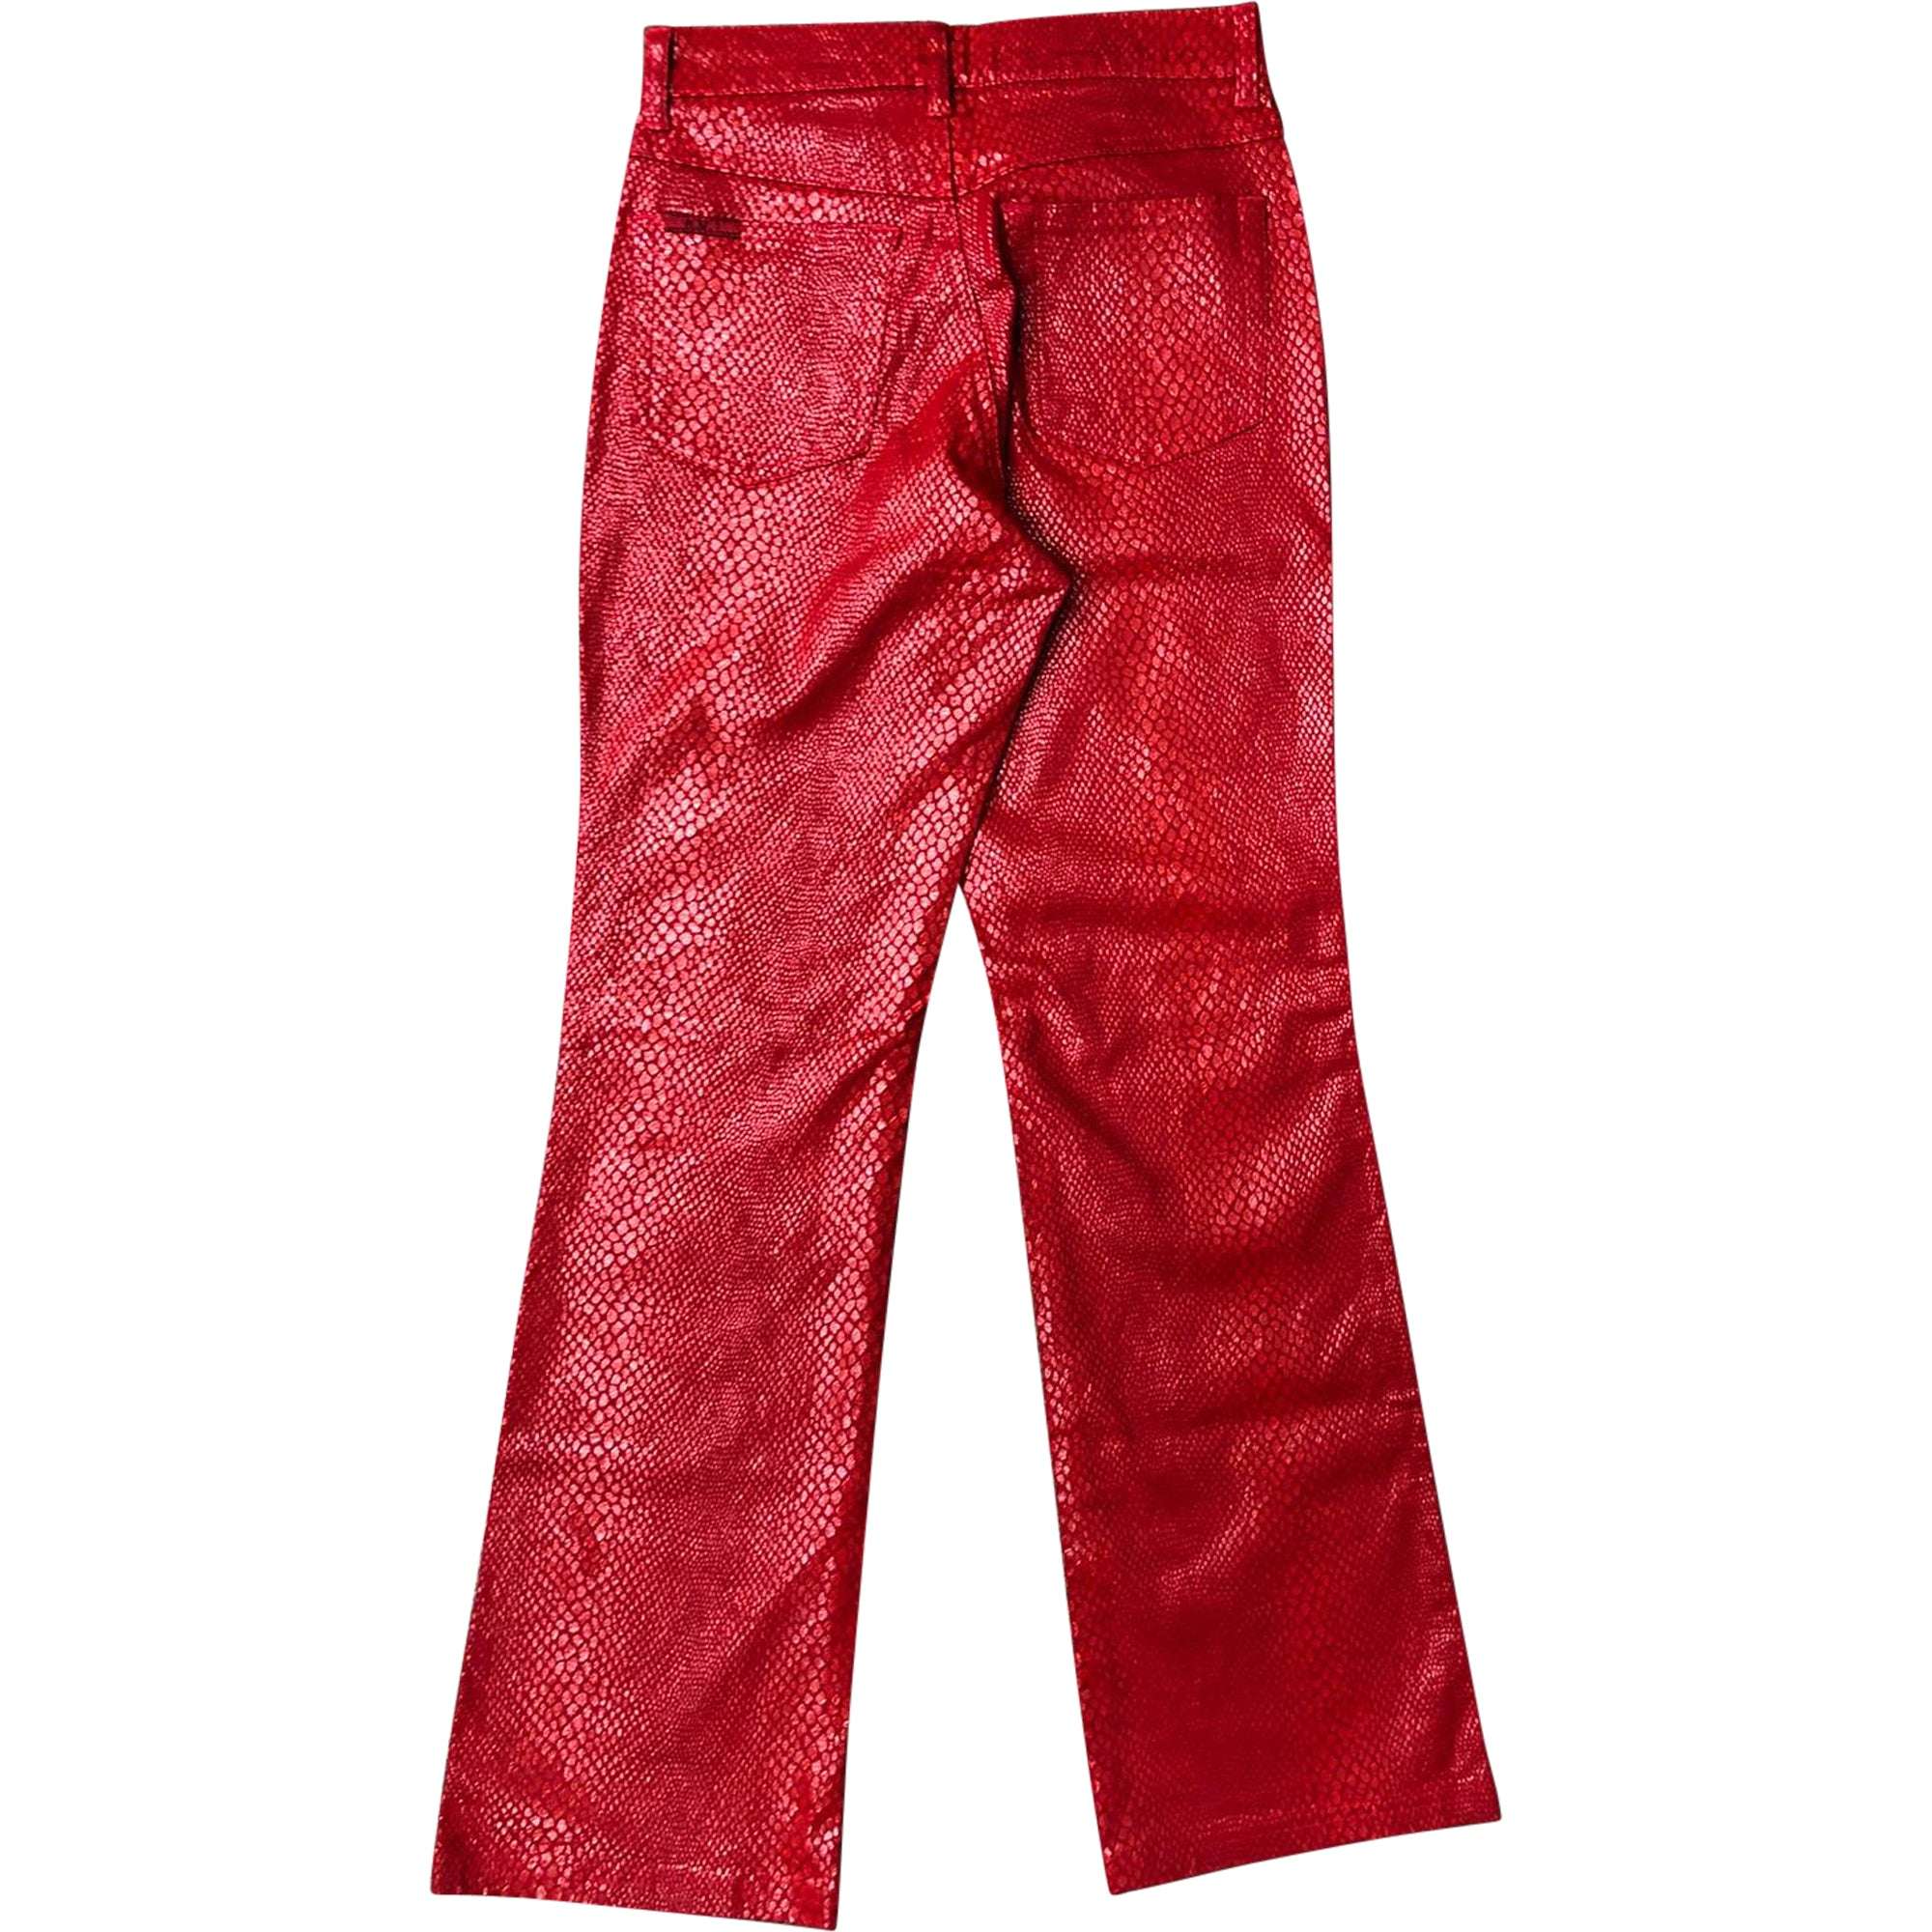 RVT Jeans (Red) UK 6